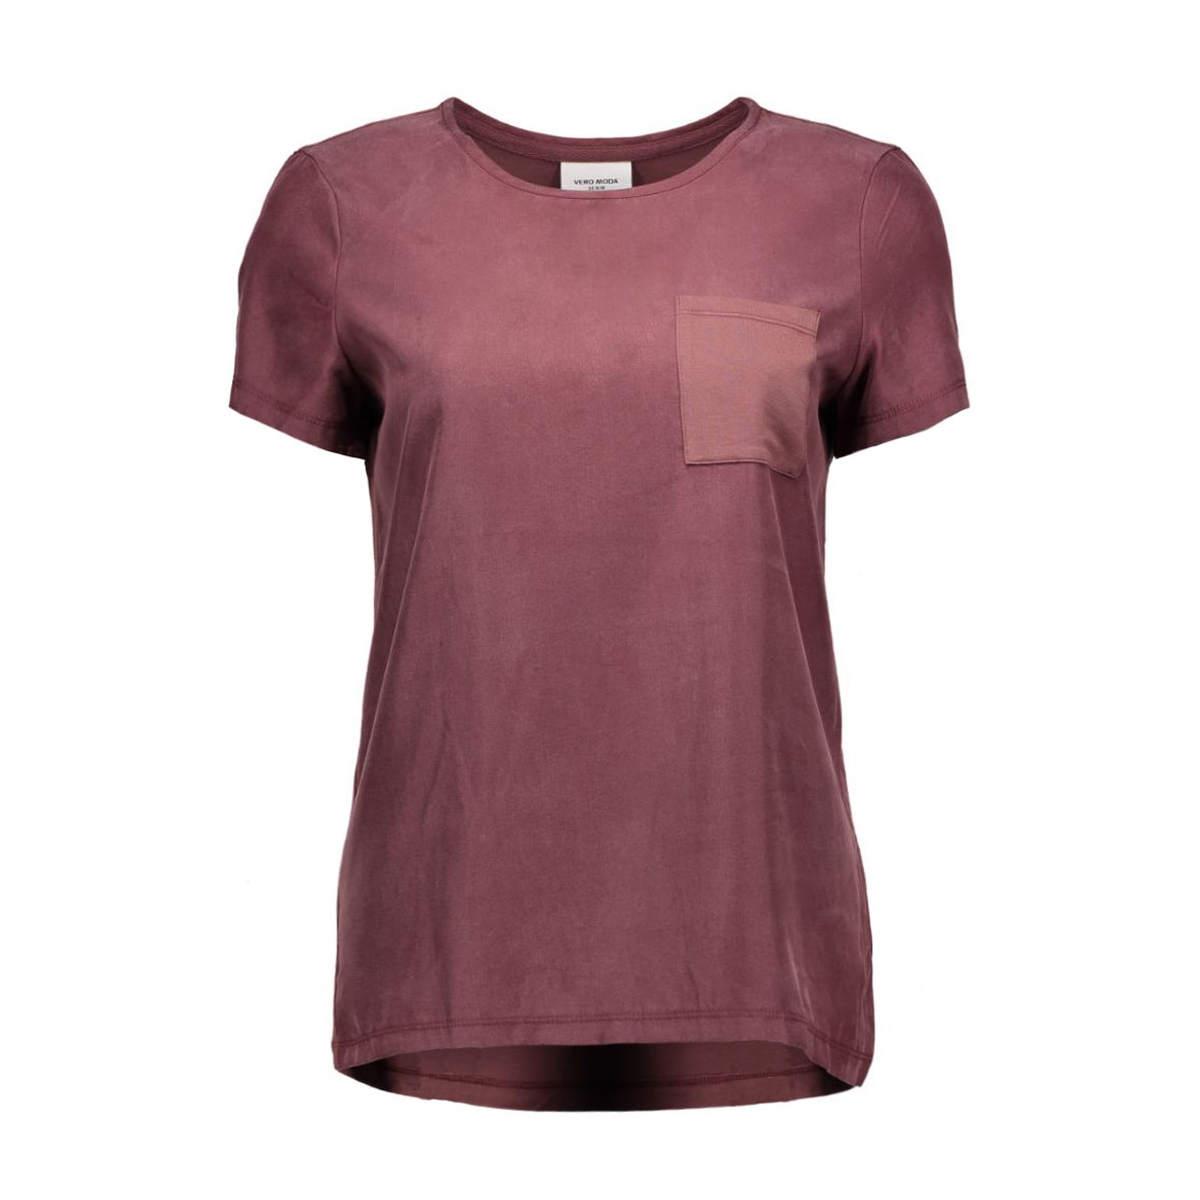 vmtenna s/s top dnm ga 10161808 vero moda t-shirt decadent chocolate